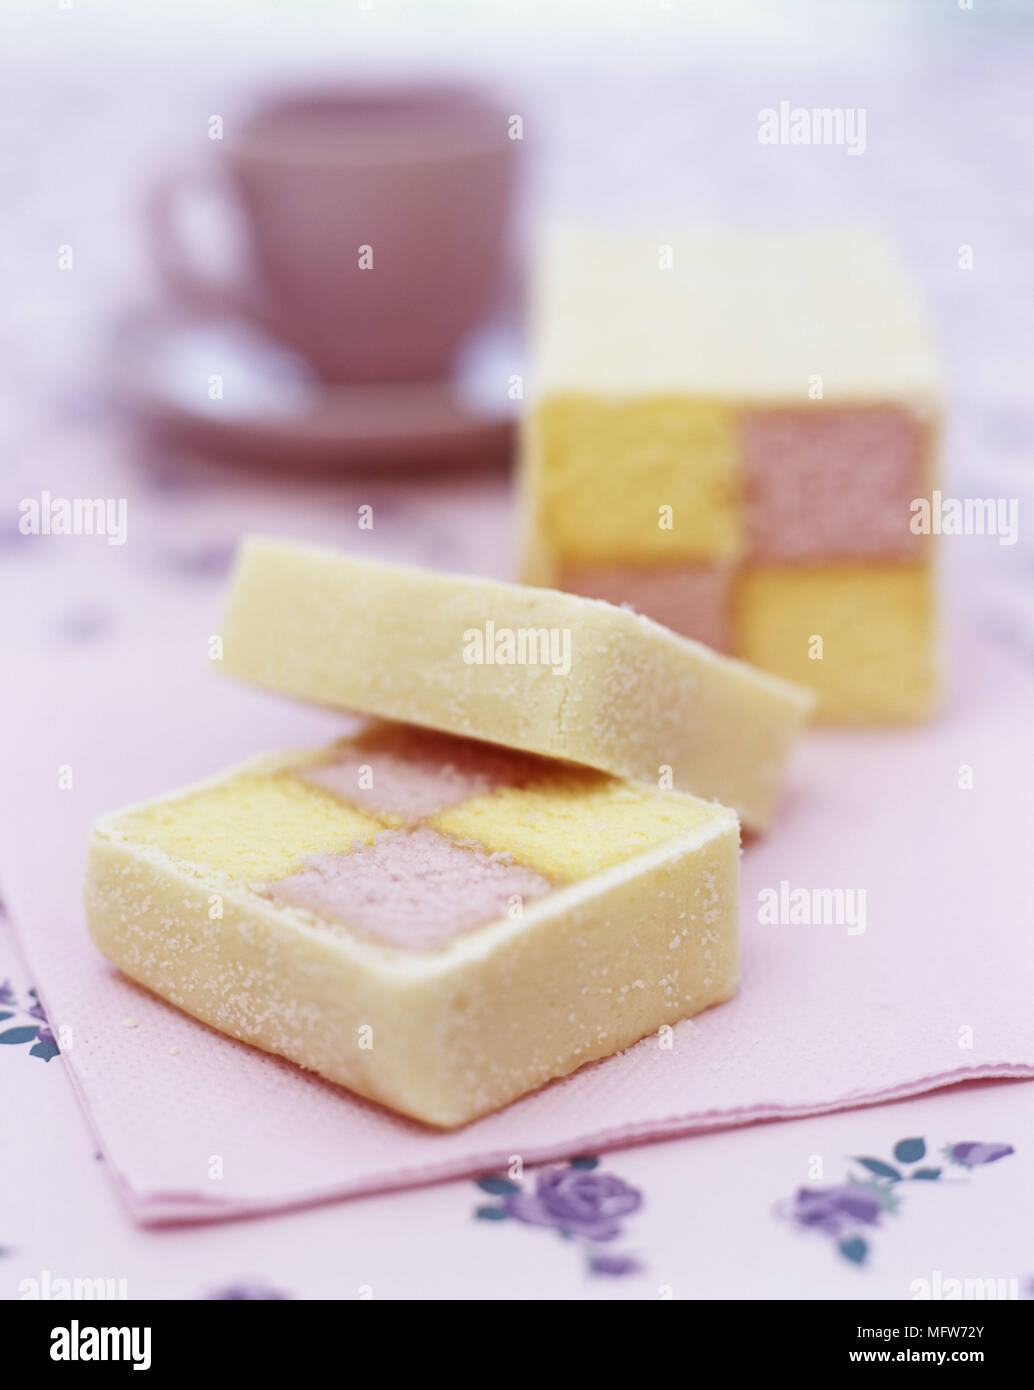 A detail of slices of Battenburg cake - Stock Image